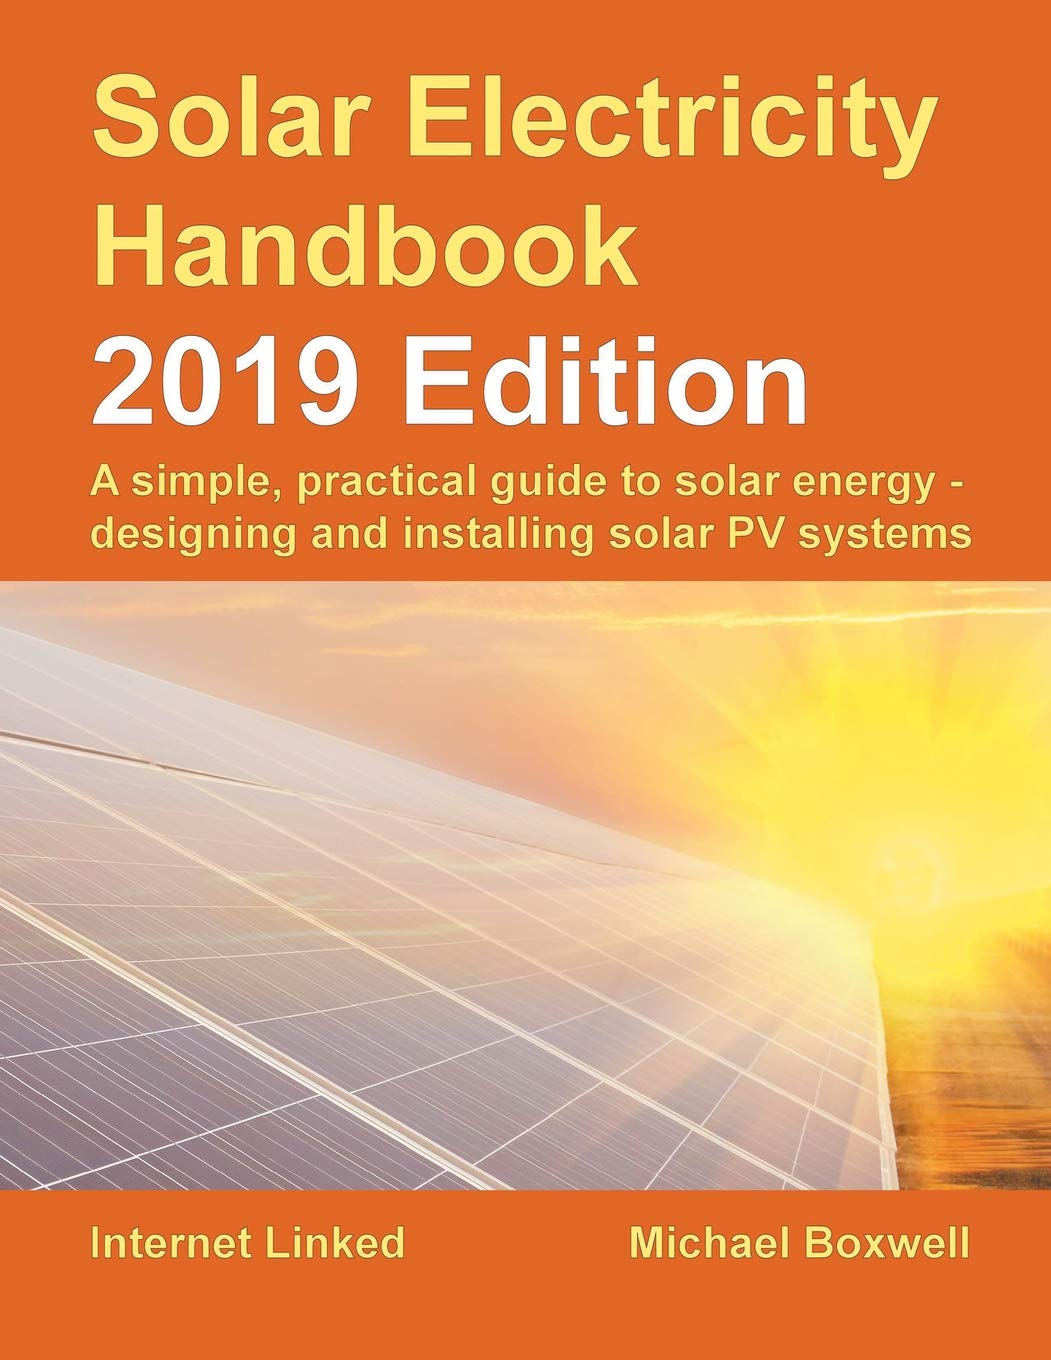 Solar Electricity Handbook – 2019 Edition: A simple, practical guide to solar energy – designing and installing solar photovoltaic systems. por Michael Boxwell